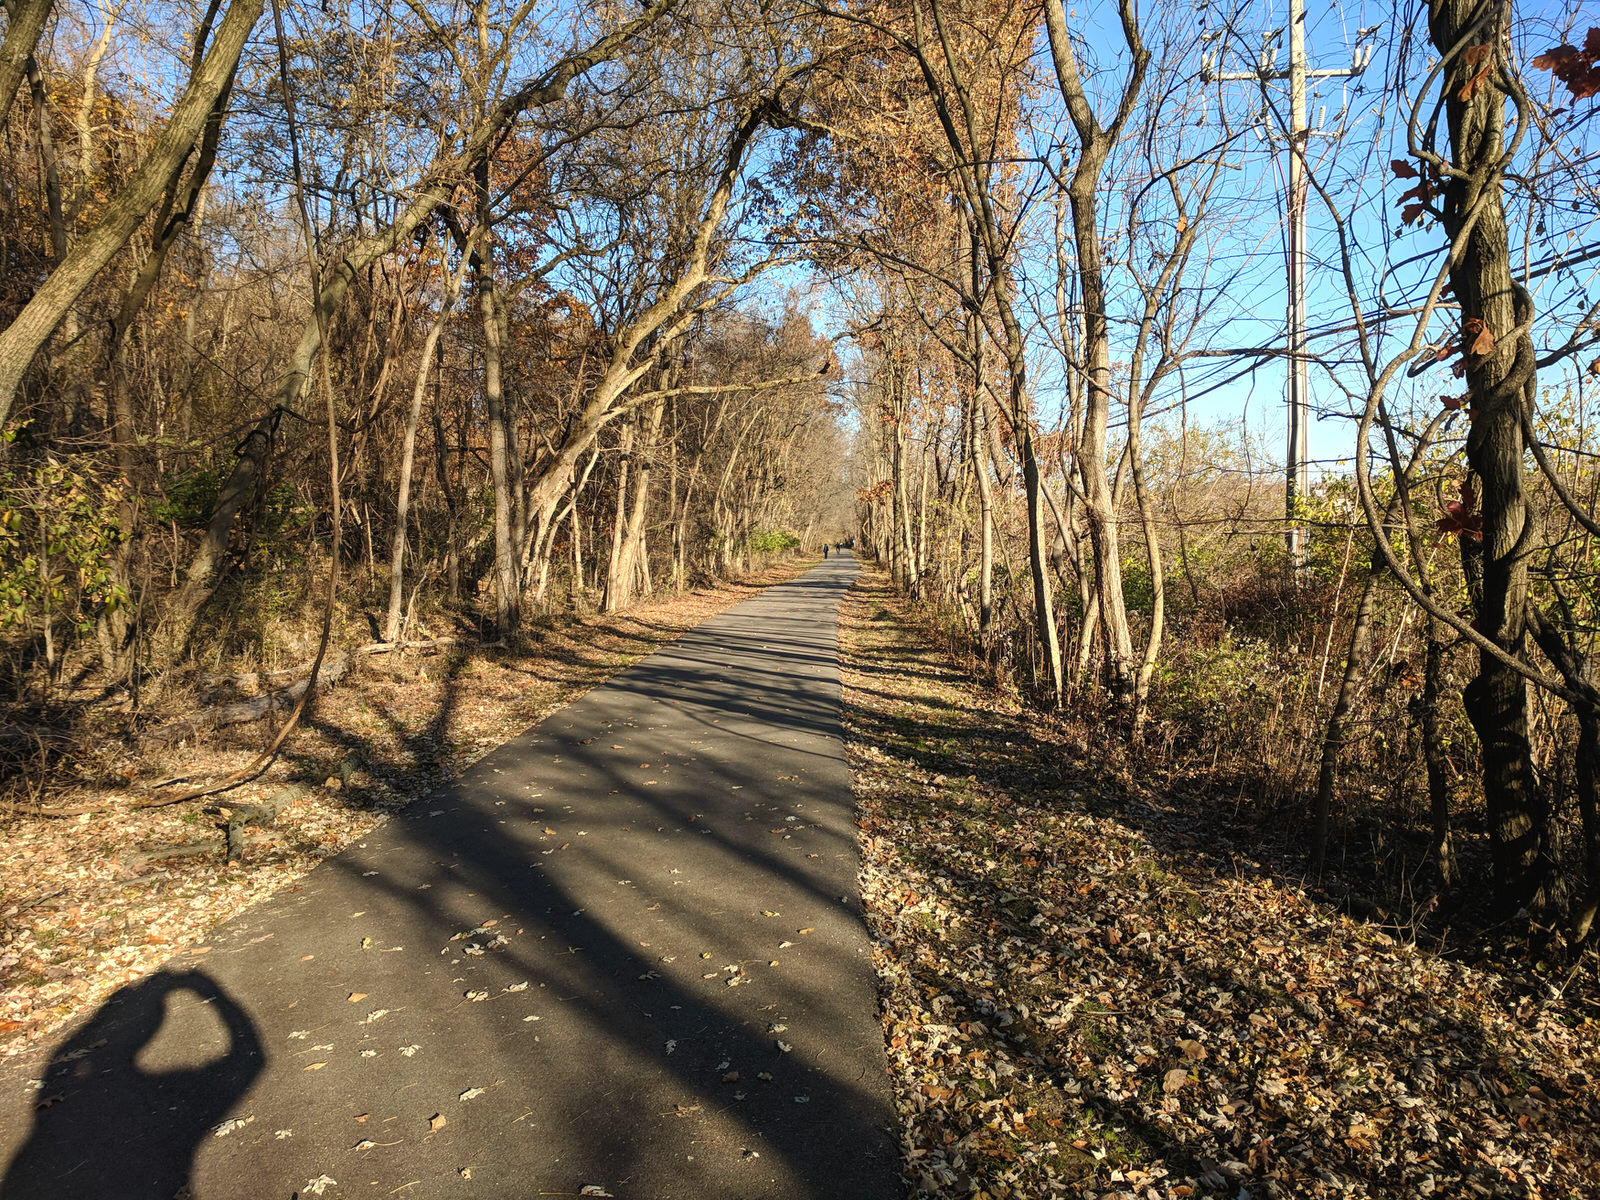 photo: Philly to VF Bikeway - near Betzwood picnic area in Valley Forge NHP - 11-28-2017. Photo by Jim Walla.